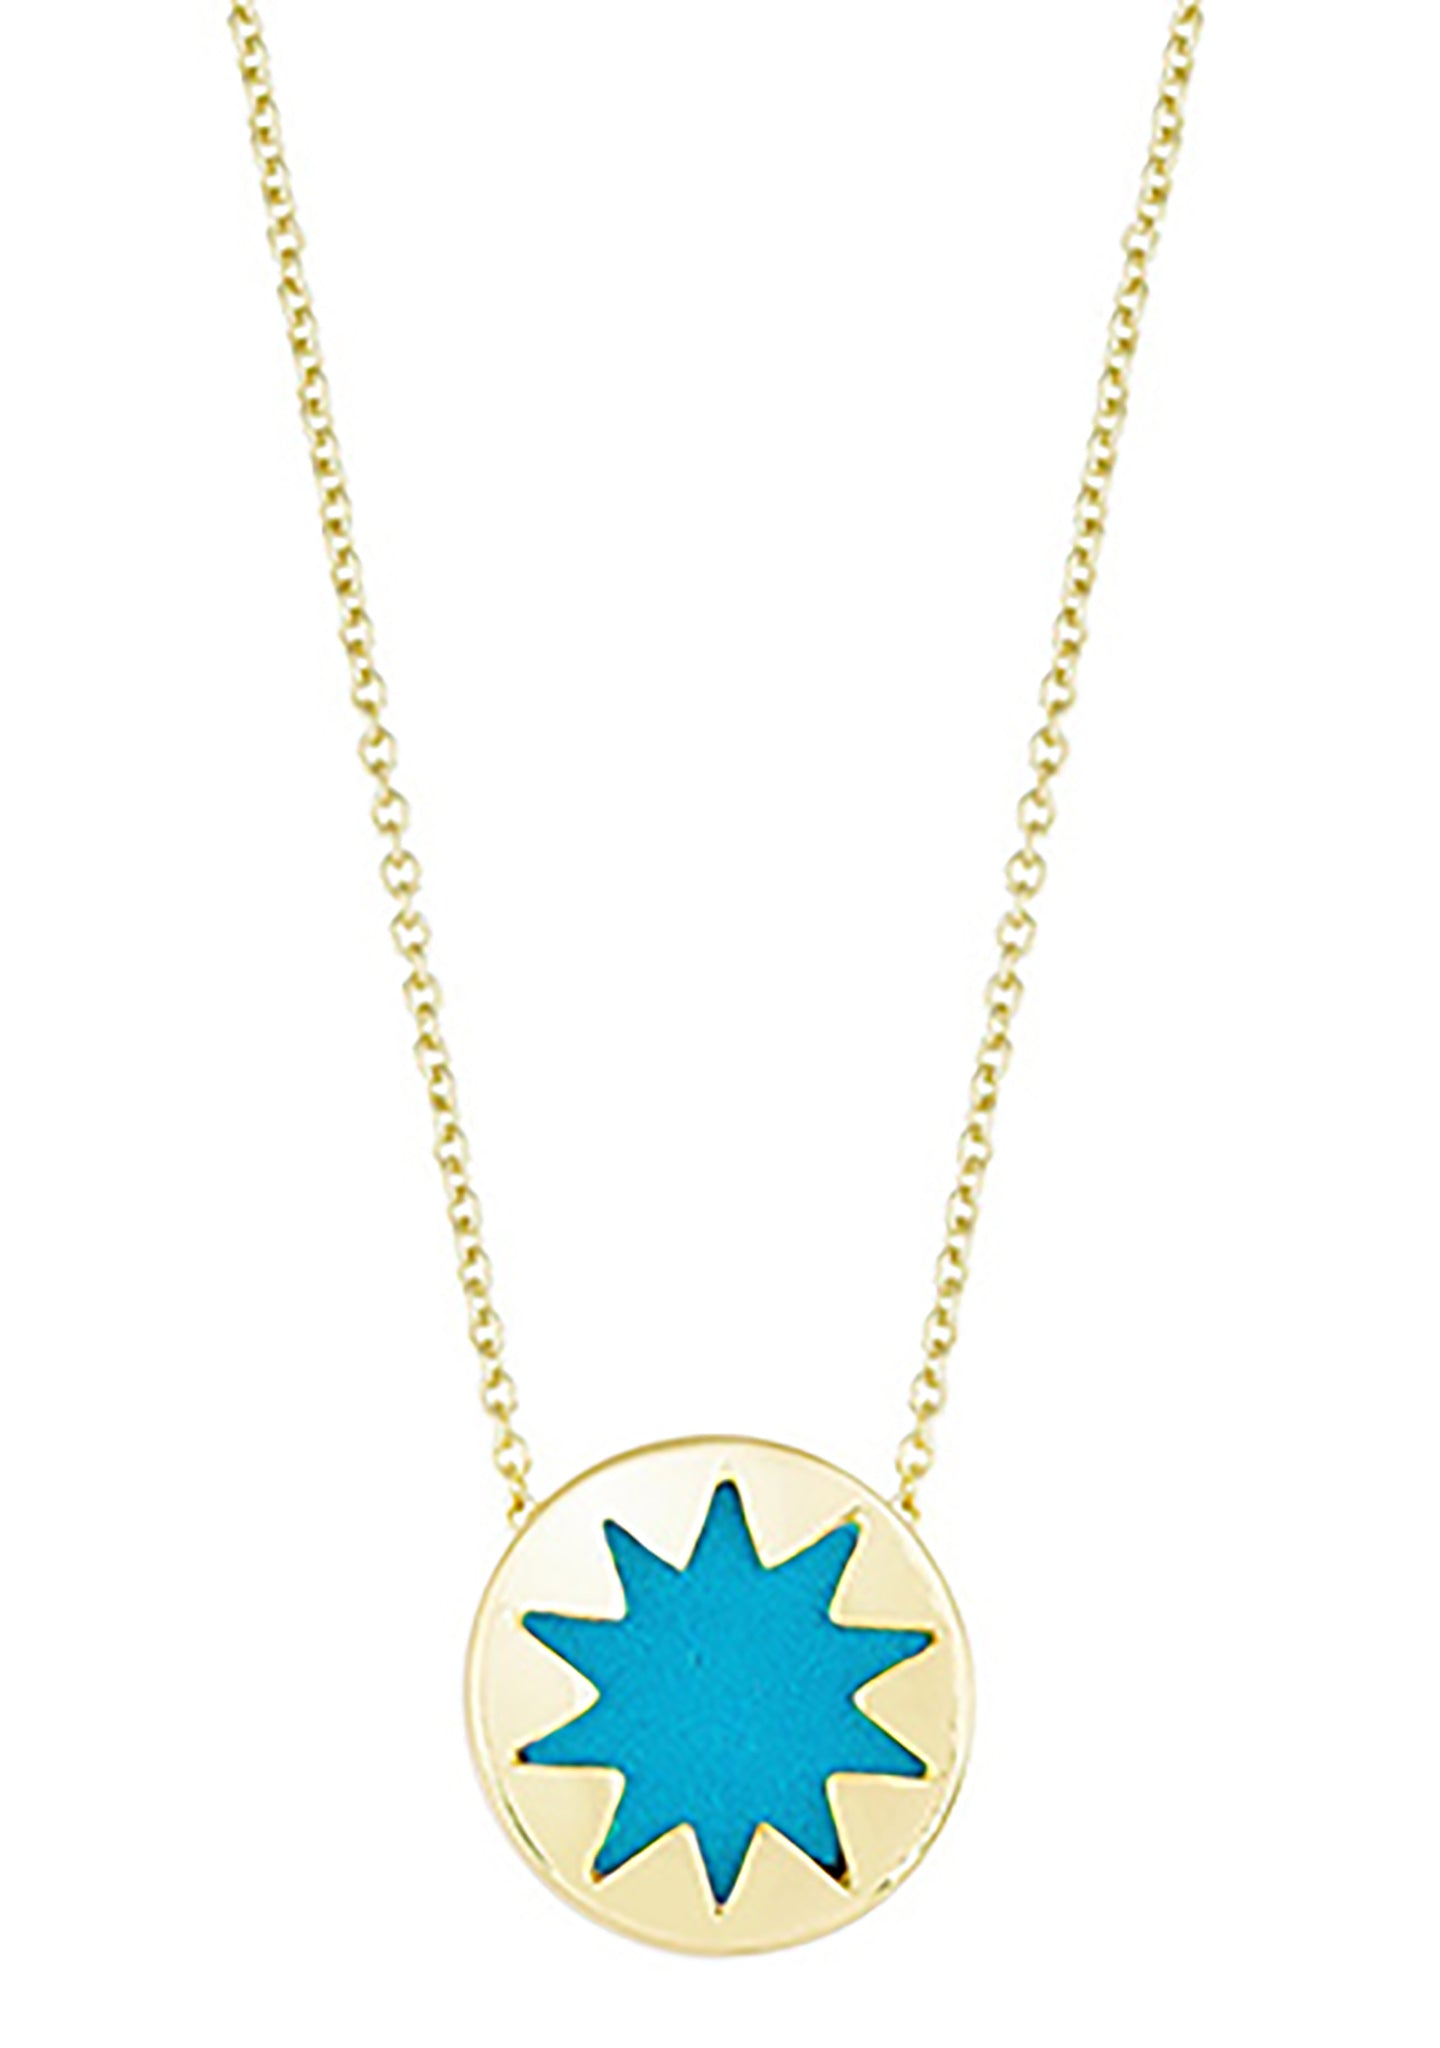 House of Harlow 1960 Mini Sunburst Pendant Necklace in Gold/Teal